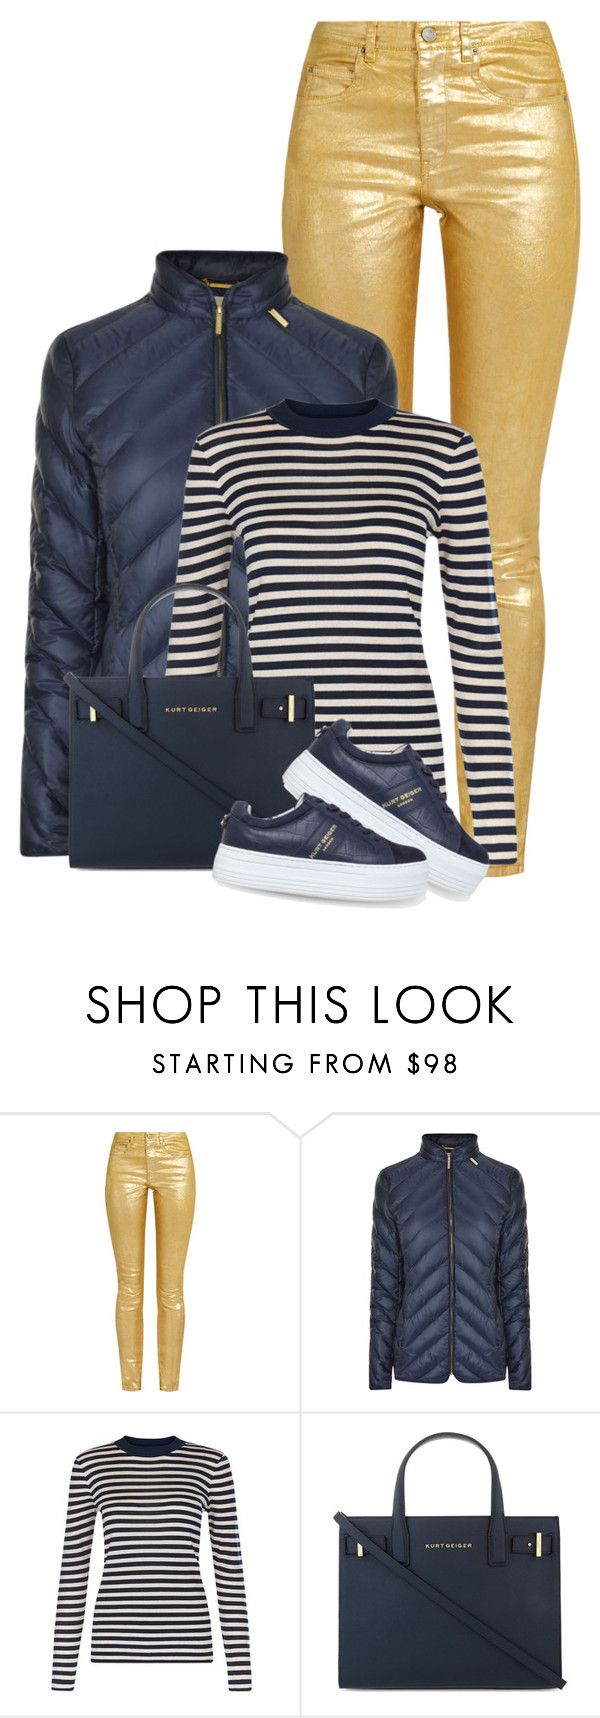 """""""Kurt Geiger Tote & Sneakers"""" by seahag2903 ❤ liked on Polyvore featuring Étoile Isabel Marant, MICHAEL Michael Kors, Hobbs and Kurt Geiger"""